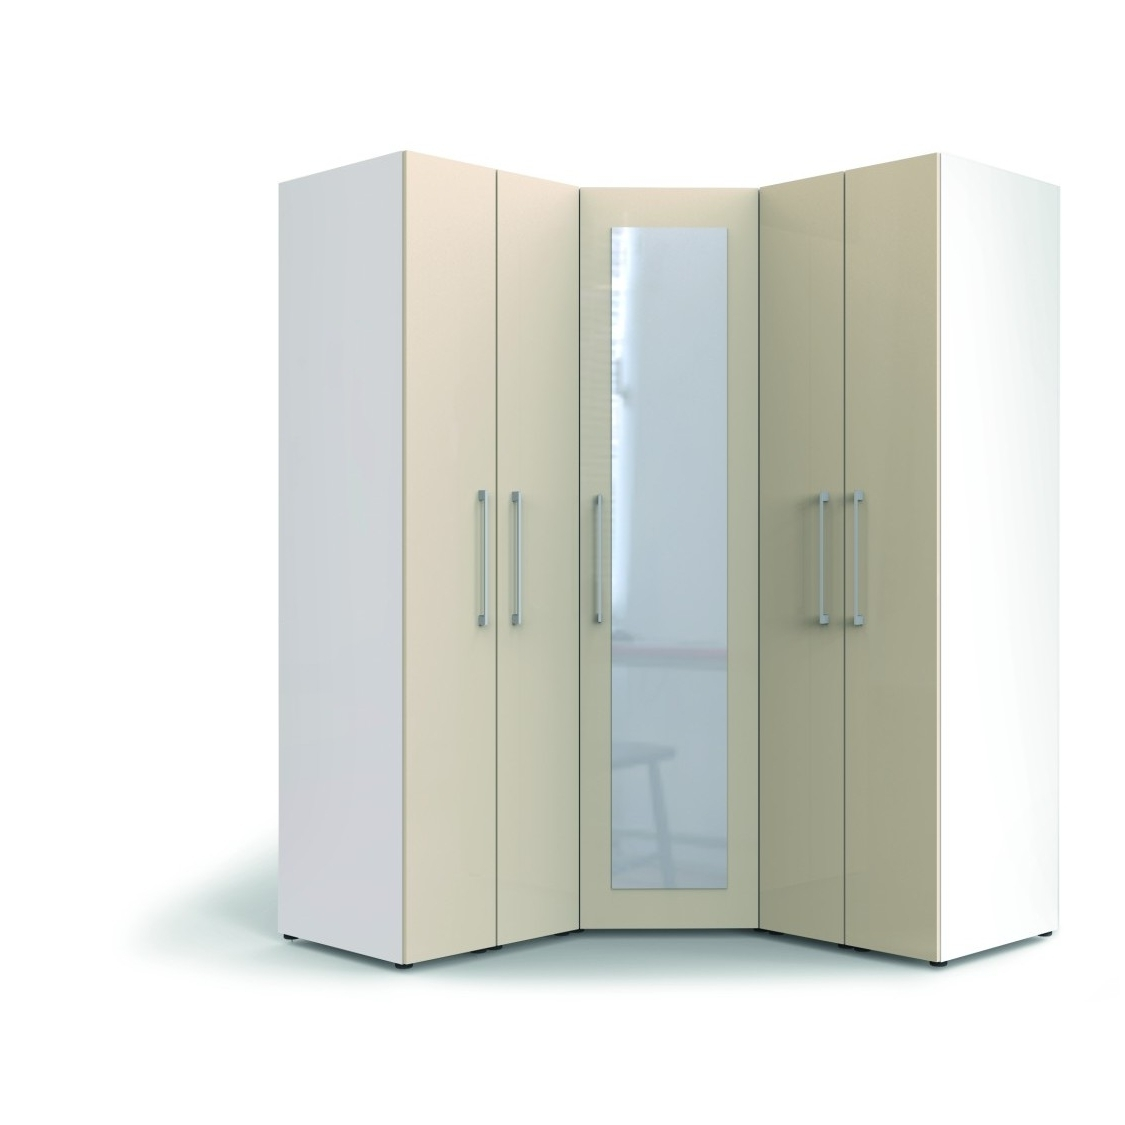 Corner Mirrored Wardrobes Intended For Most Current Novel Ideas Of Corner Wardrobe For Your Room – Blogalways (View 3 of 15)